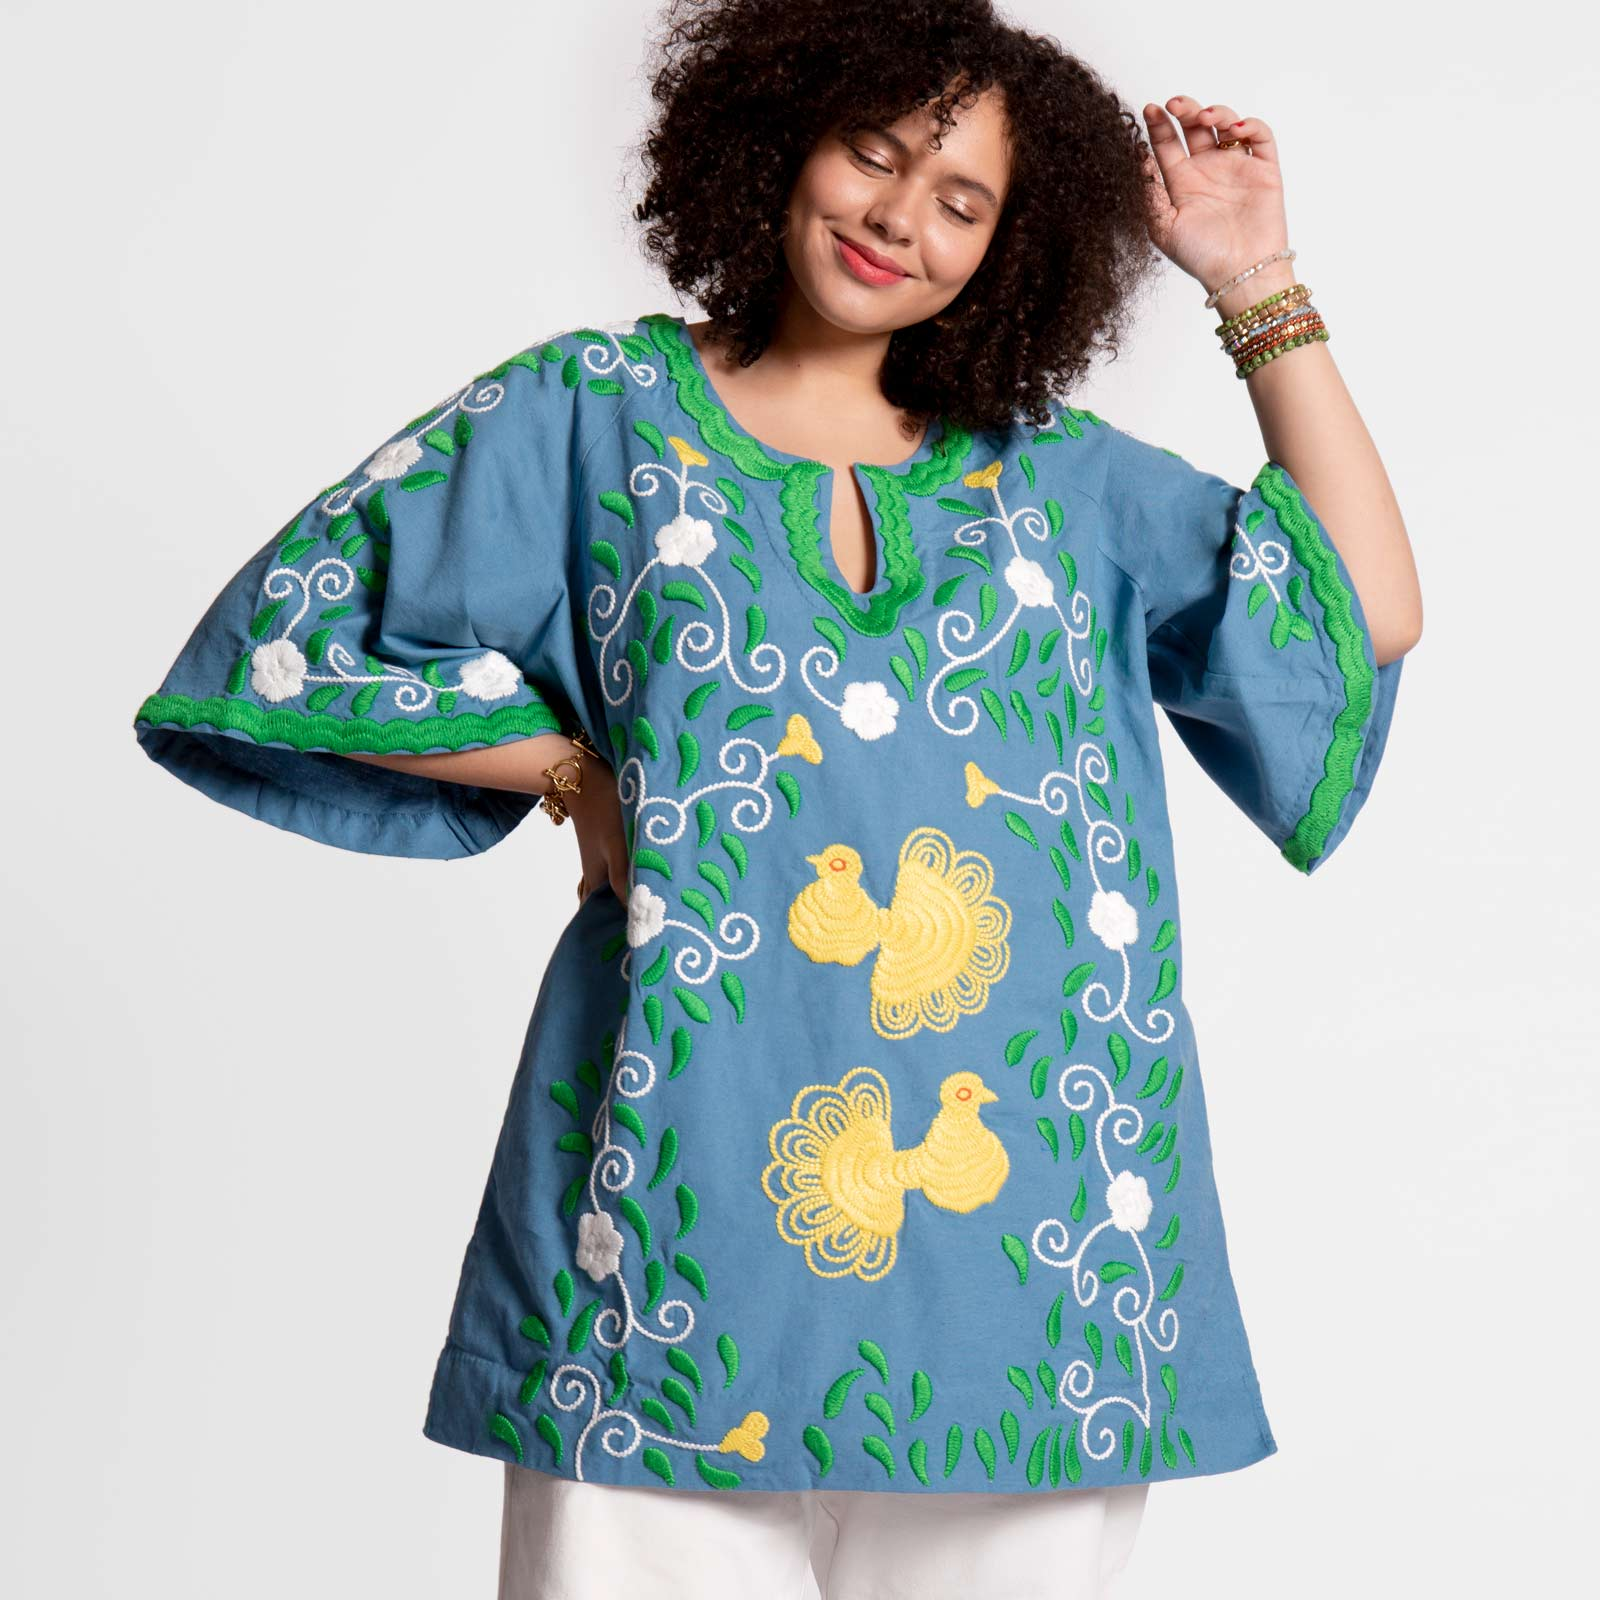 Peacock Tunic Light Blue Green Yellow - Frances Valentine